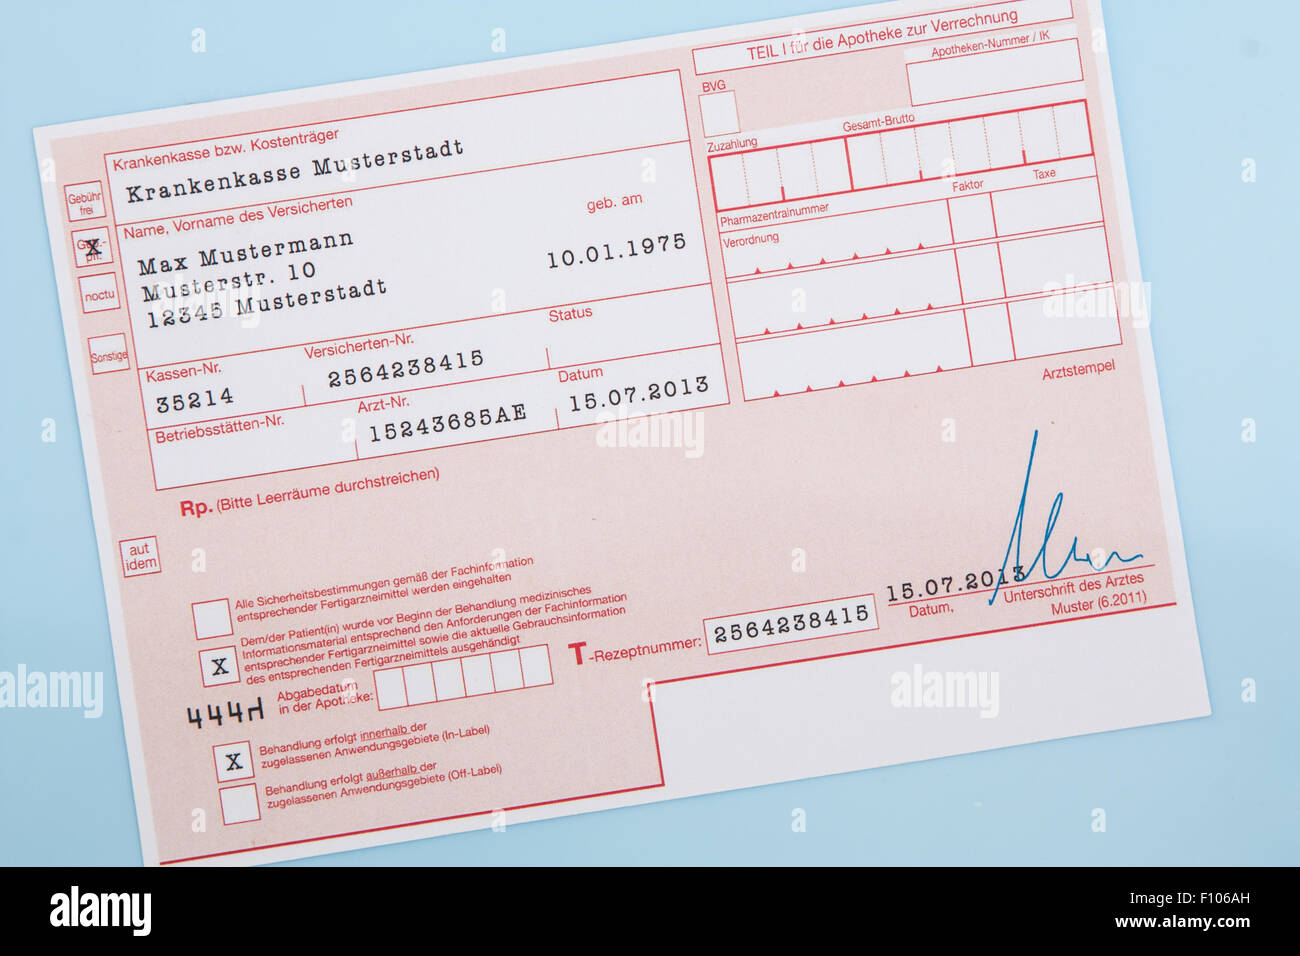 Typical German Medical Prescription Form All Data On Including Names Numbers And Signature Are Fake Made Up